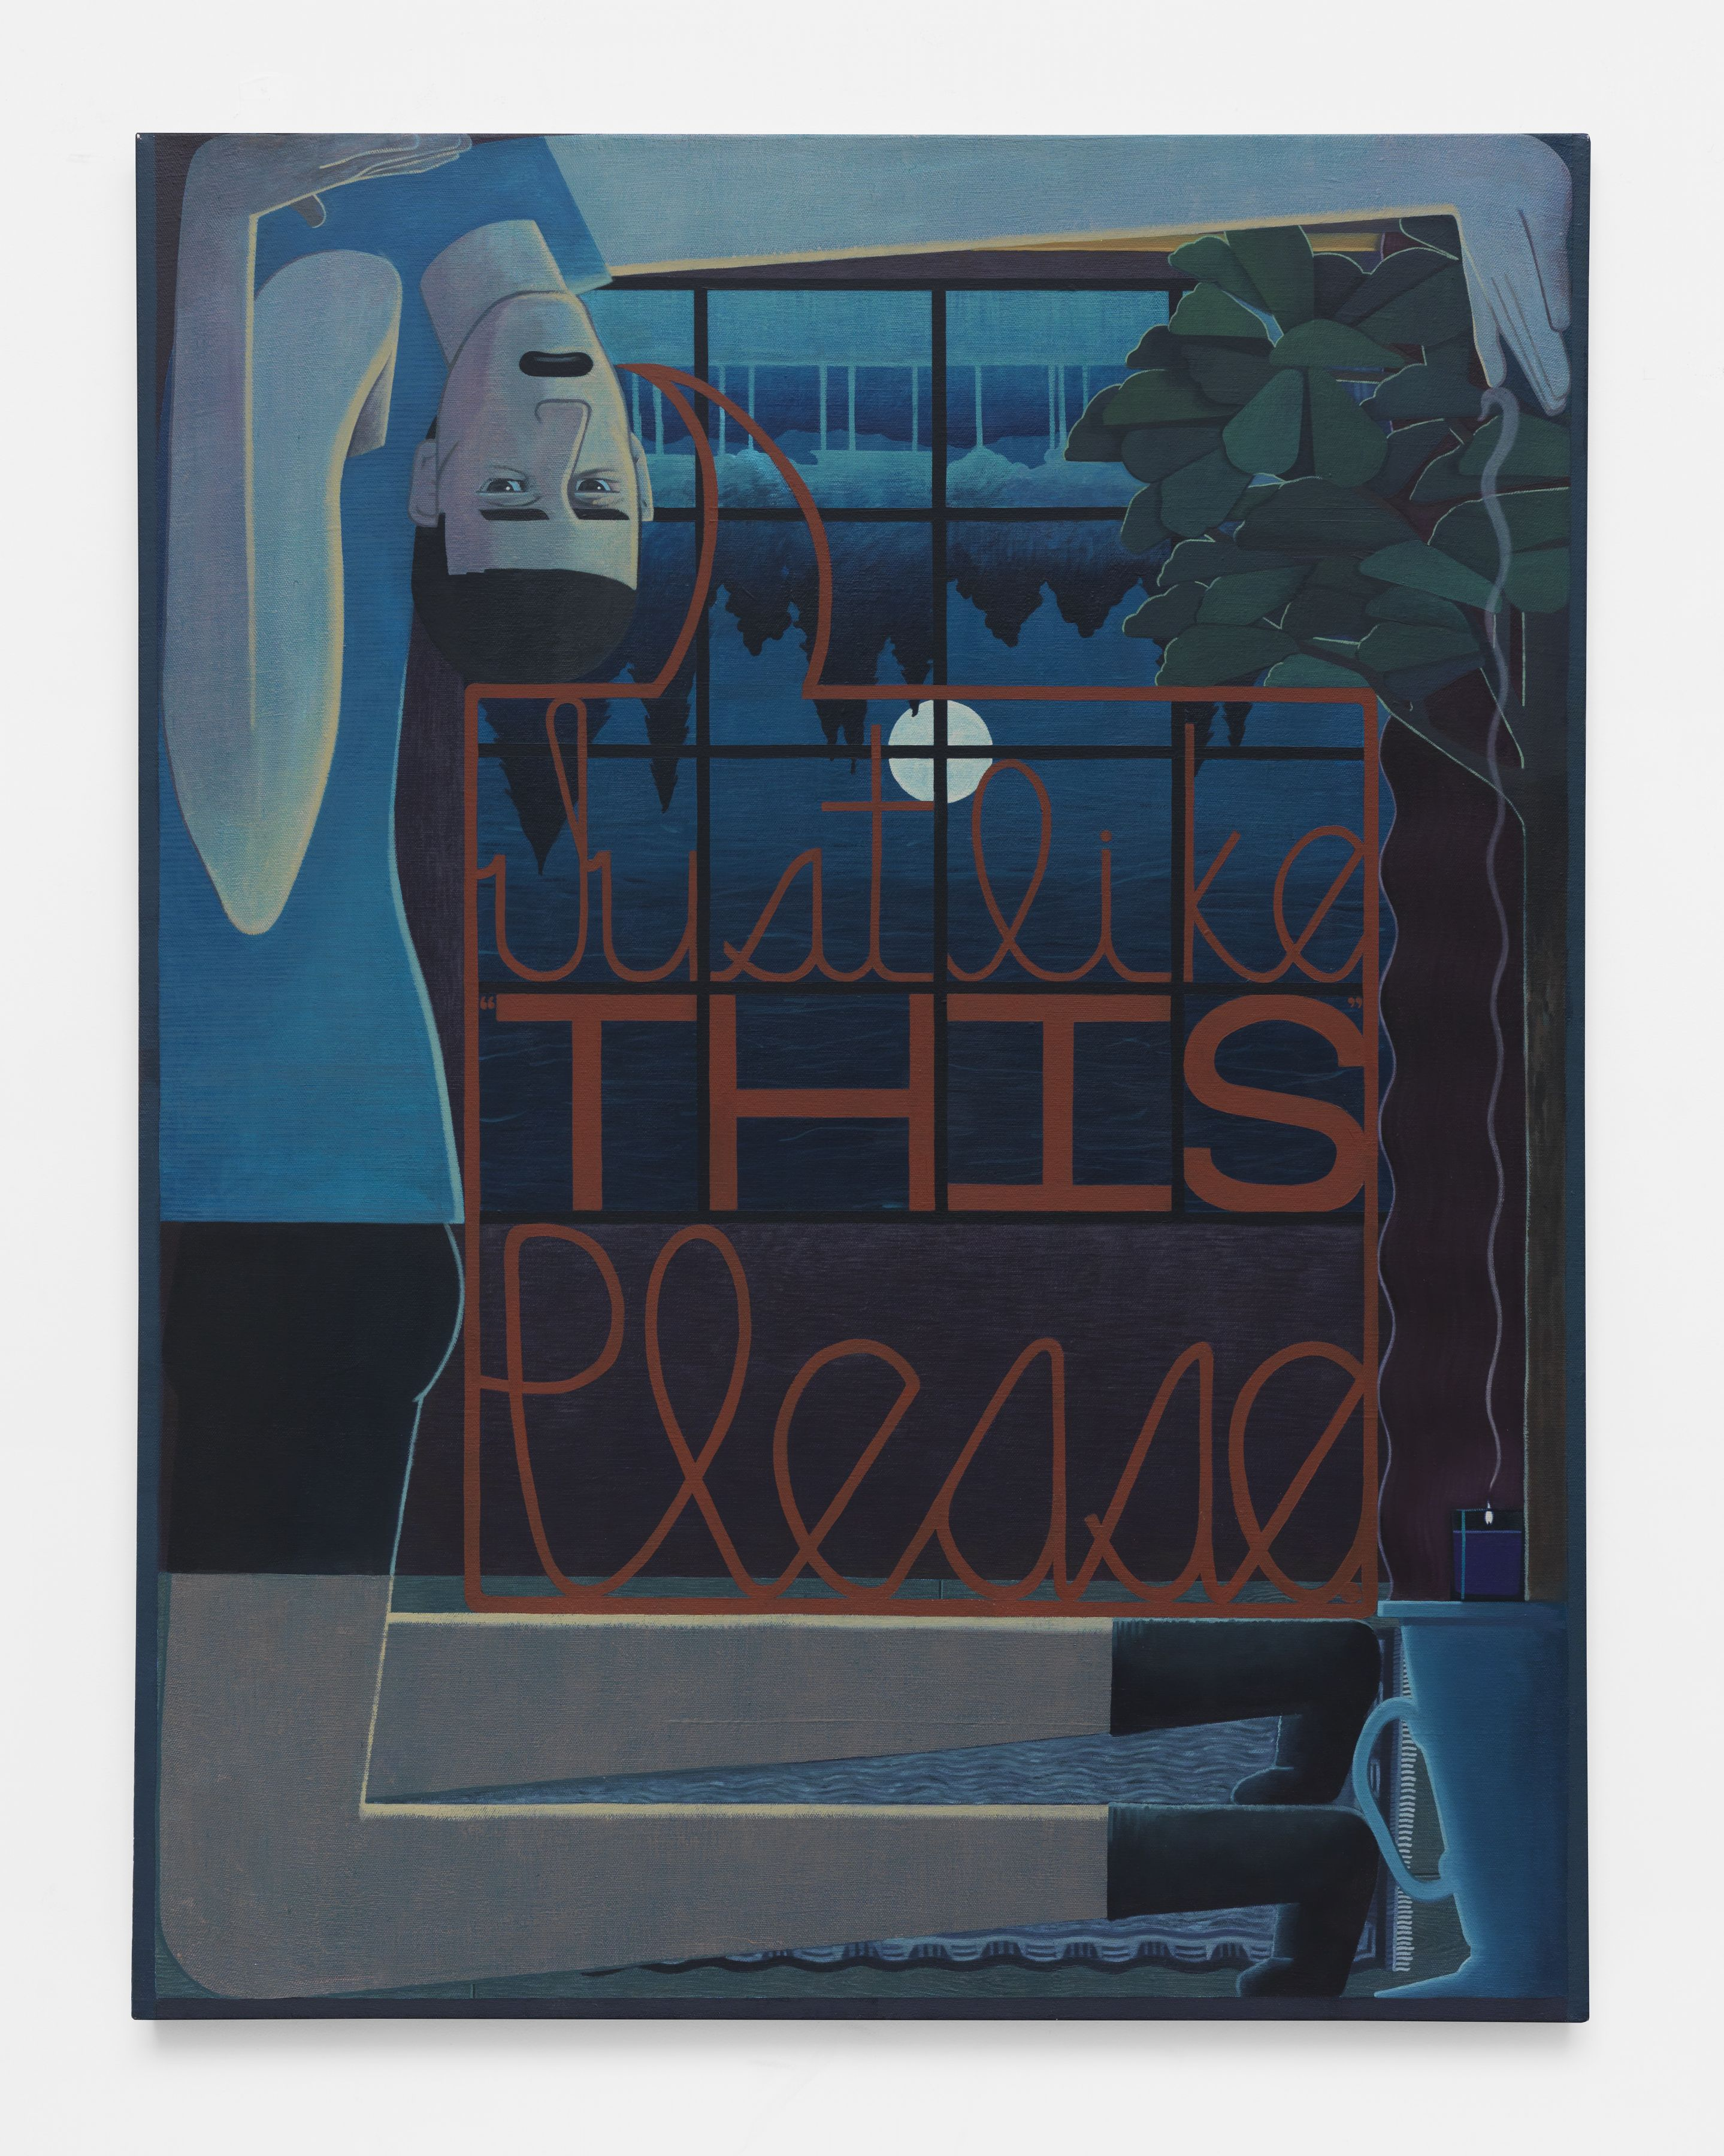 Michael Stamm, Just Like This Please, 2016